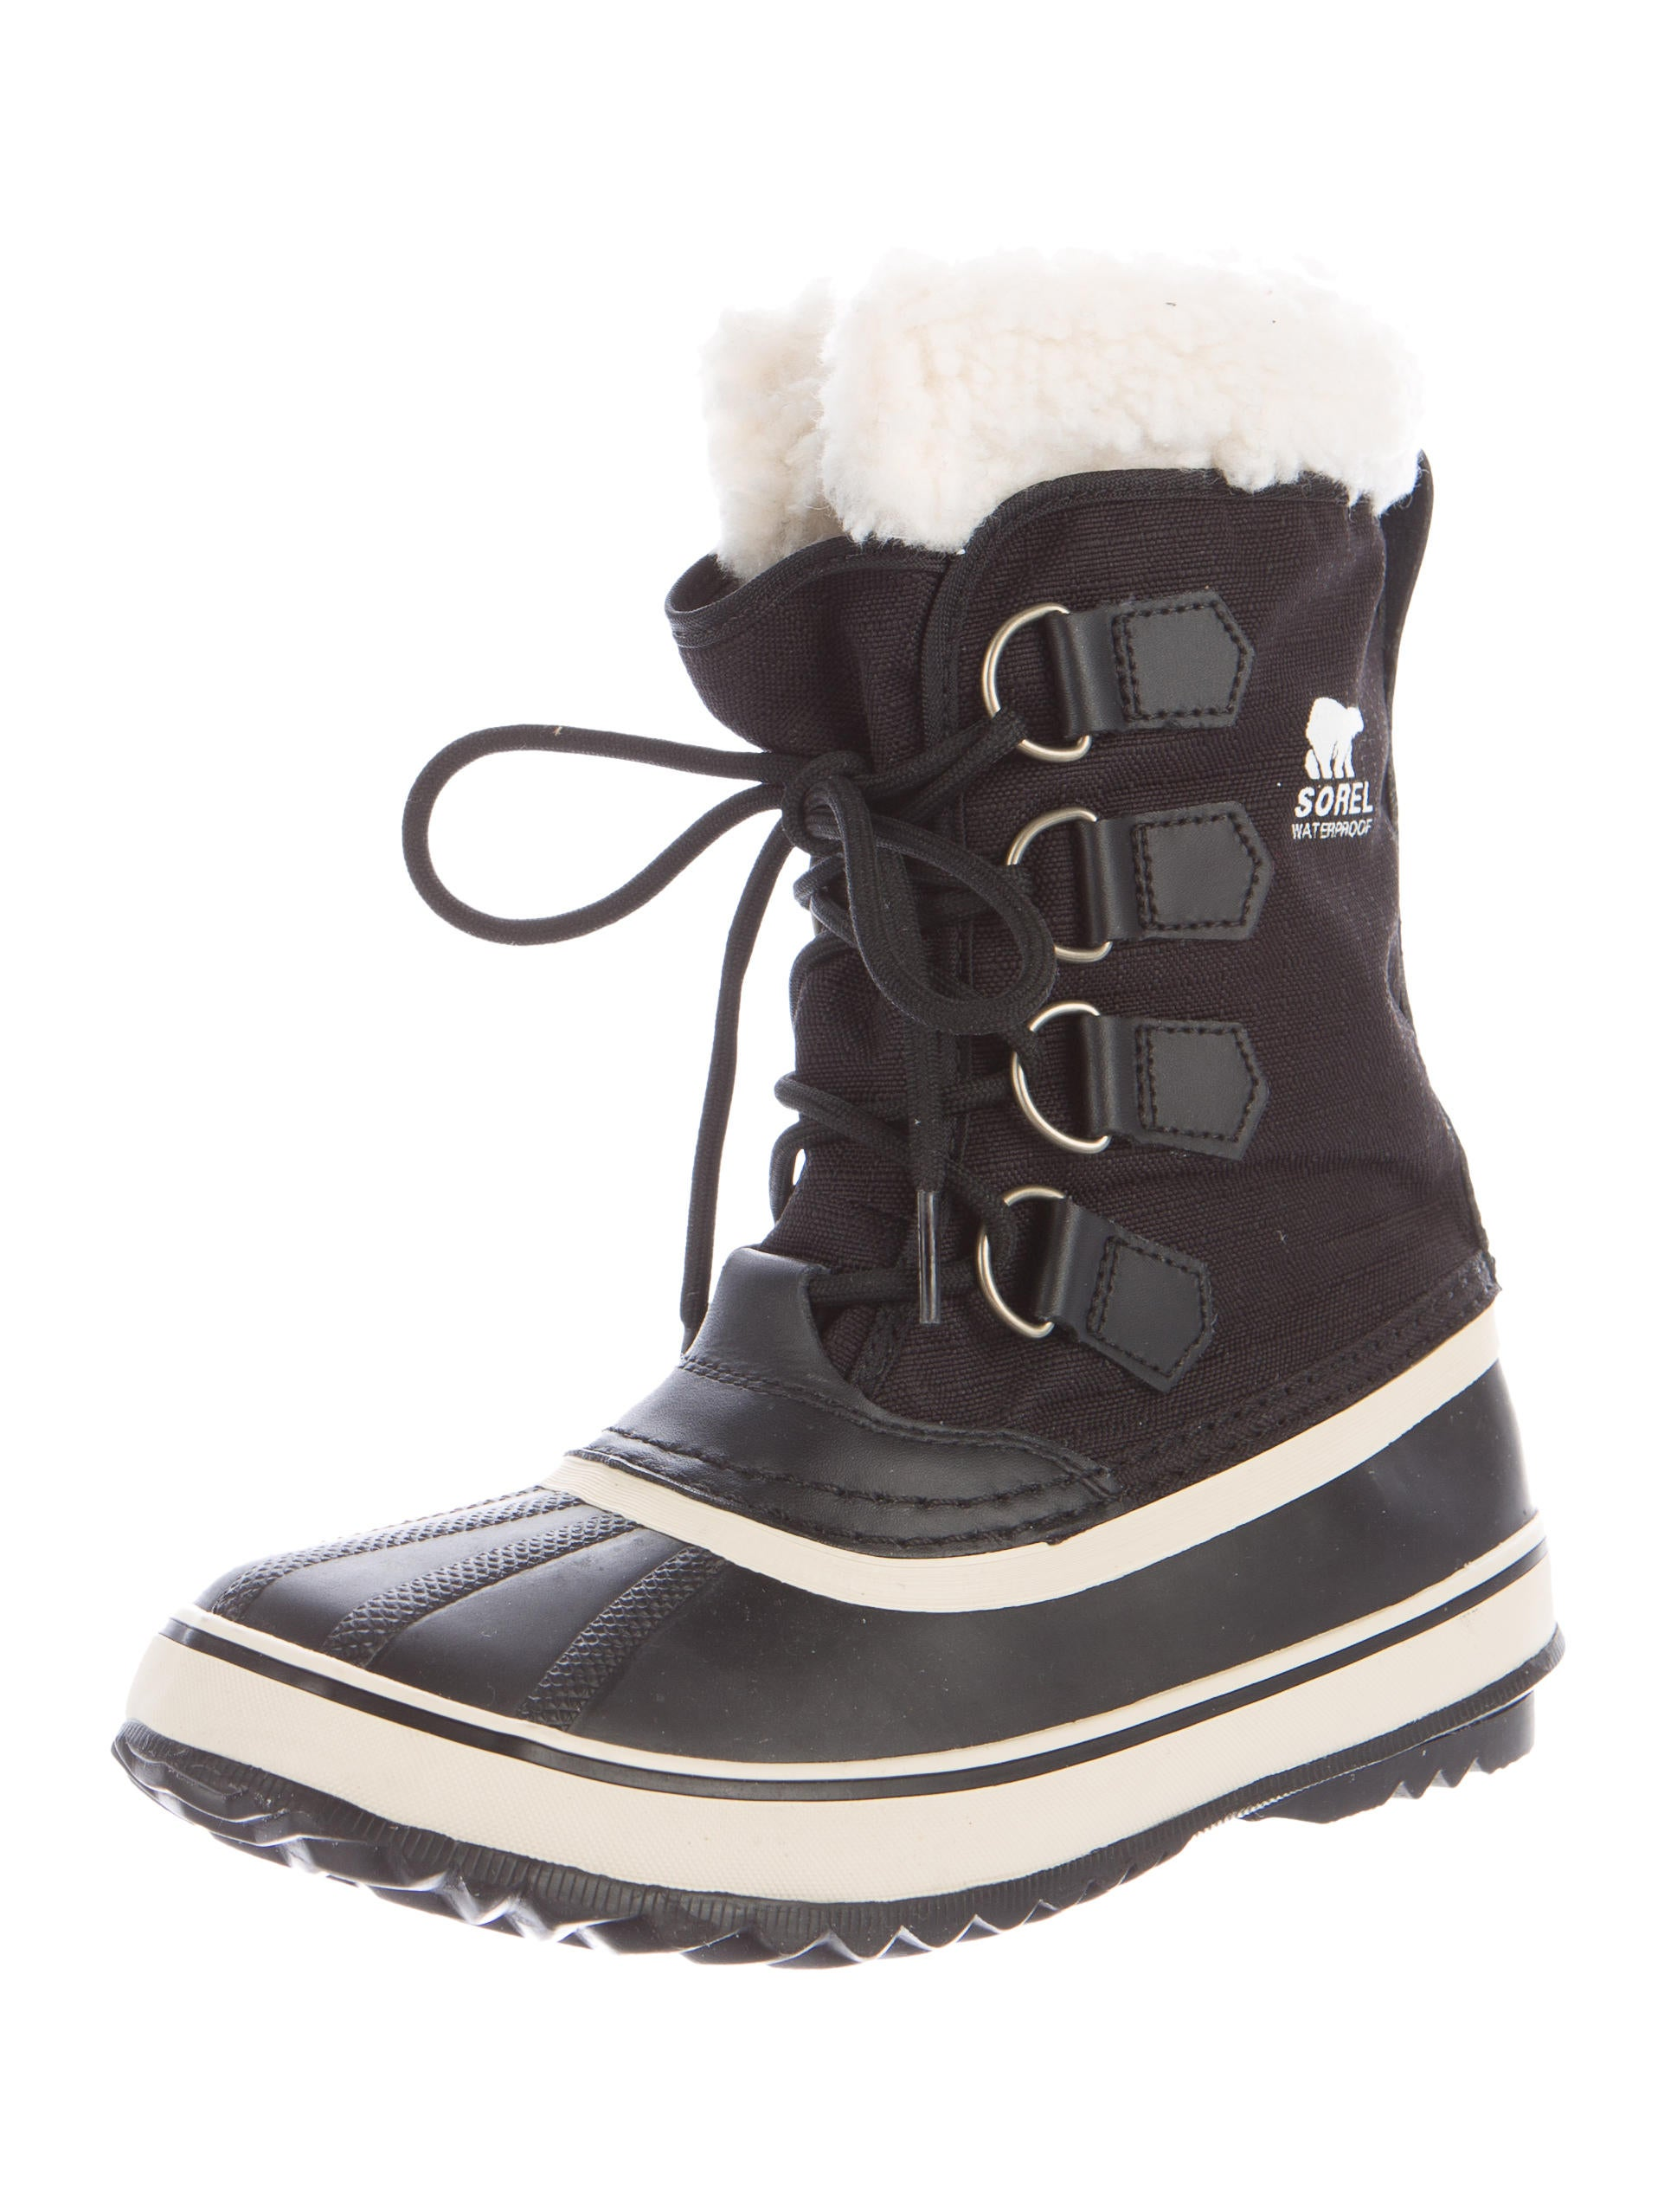 sorel carnival snow boots shoes wsorl20143 the realreal